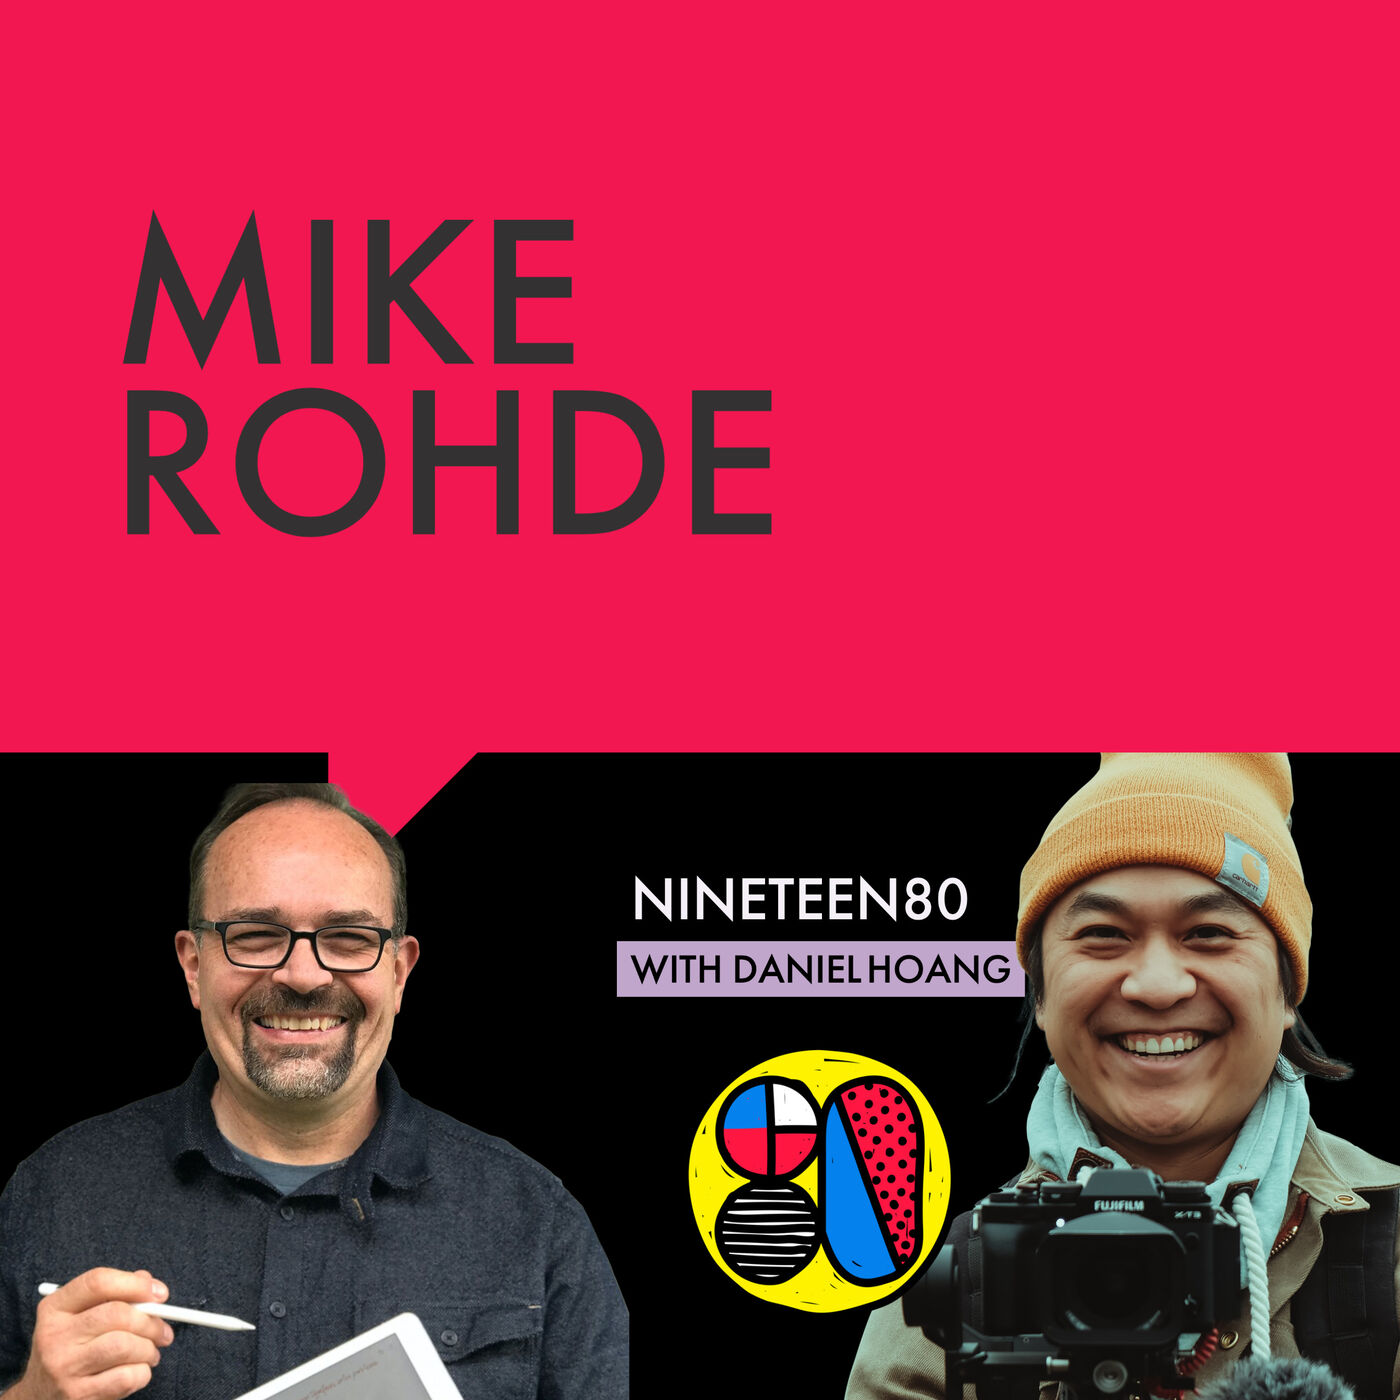 Sketchnoting and Working Analog with Mike Rohde